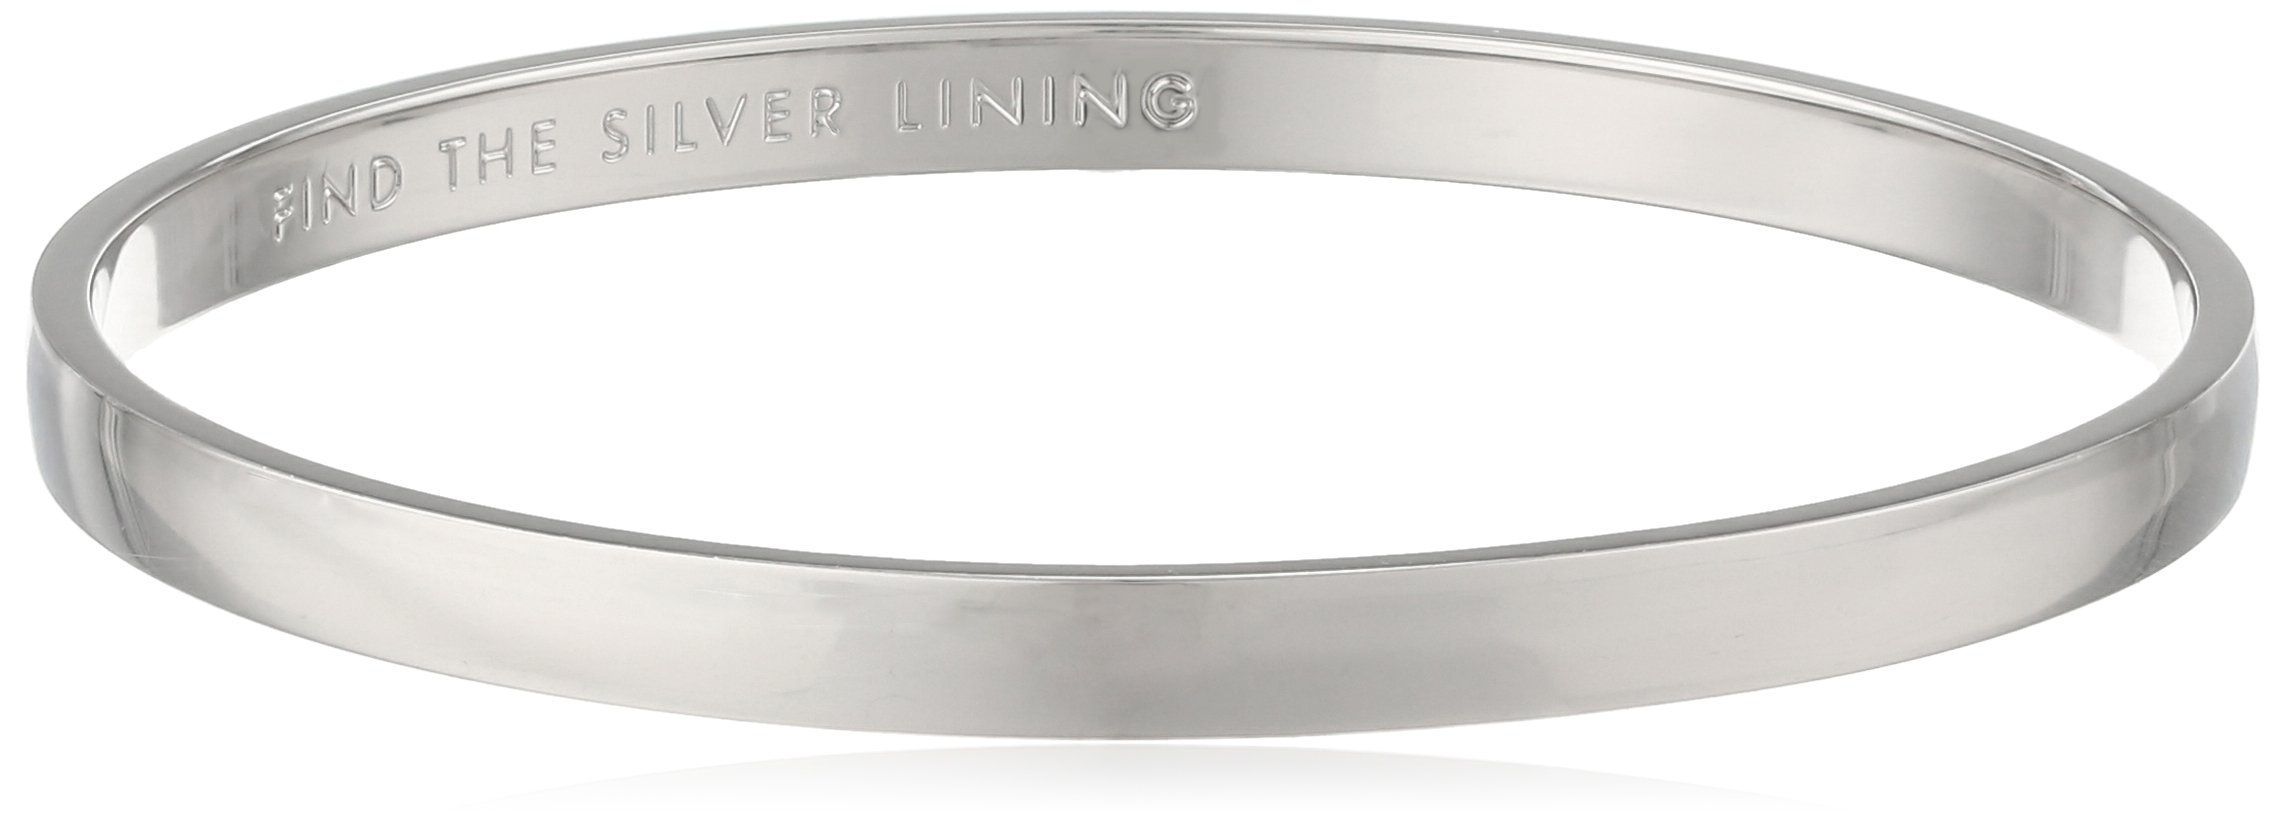 kate spade new york ''Idiom Bangles'' Find The Silver Lining Solid Bangle Bracelet by Kate Spade New York